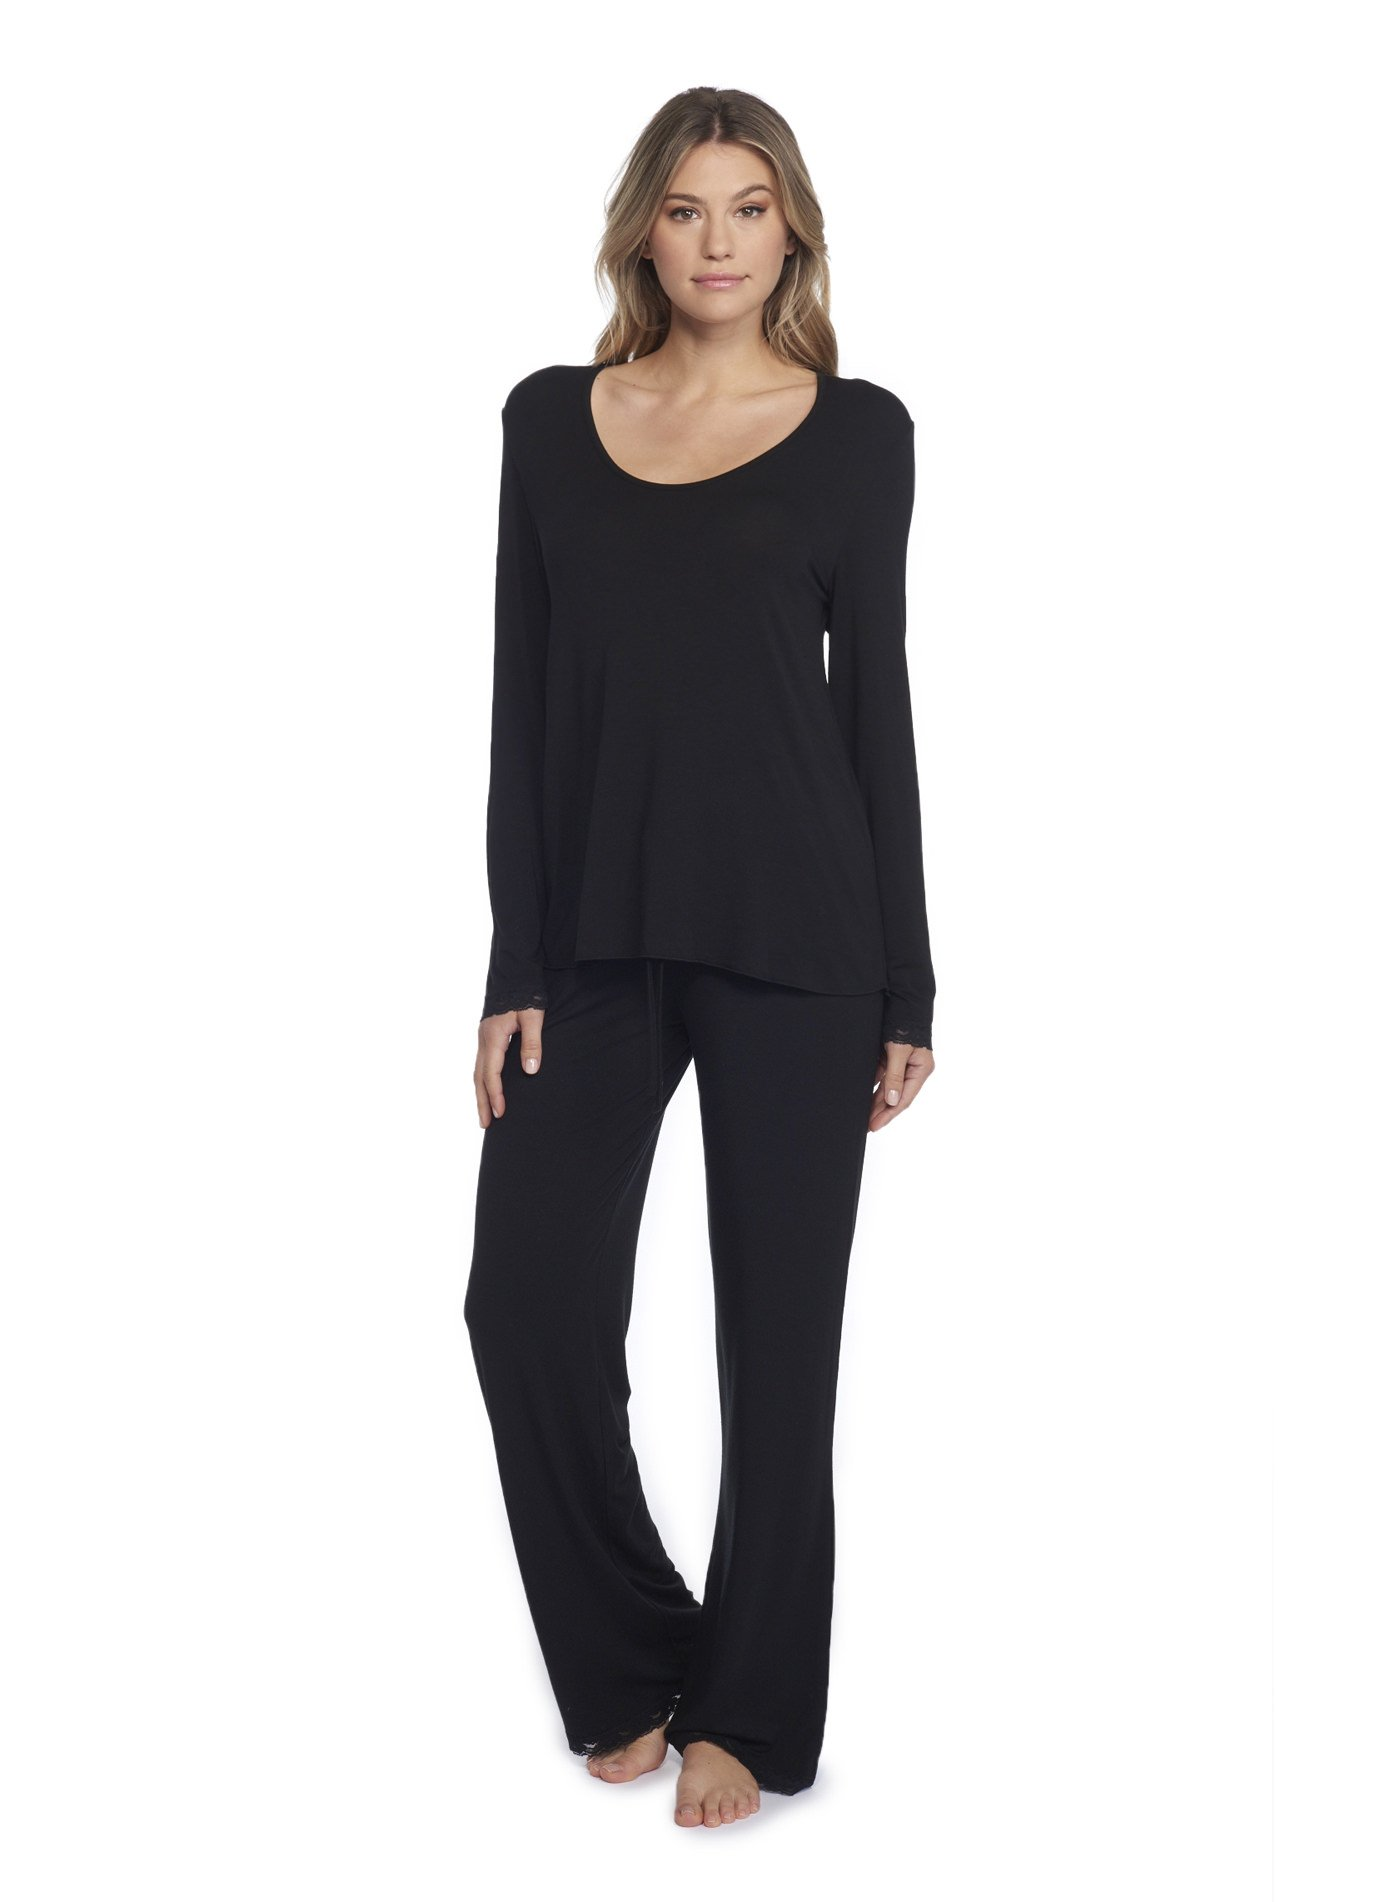 Barefoot Dreams Luxe Milk Jersey Classic Pant & U-Neck Long Sleeve Tee Set Black, X-Large